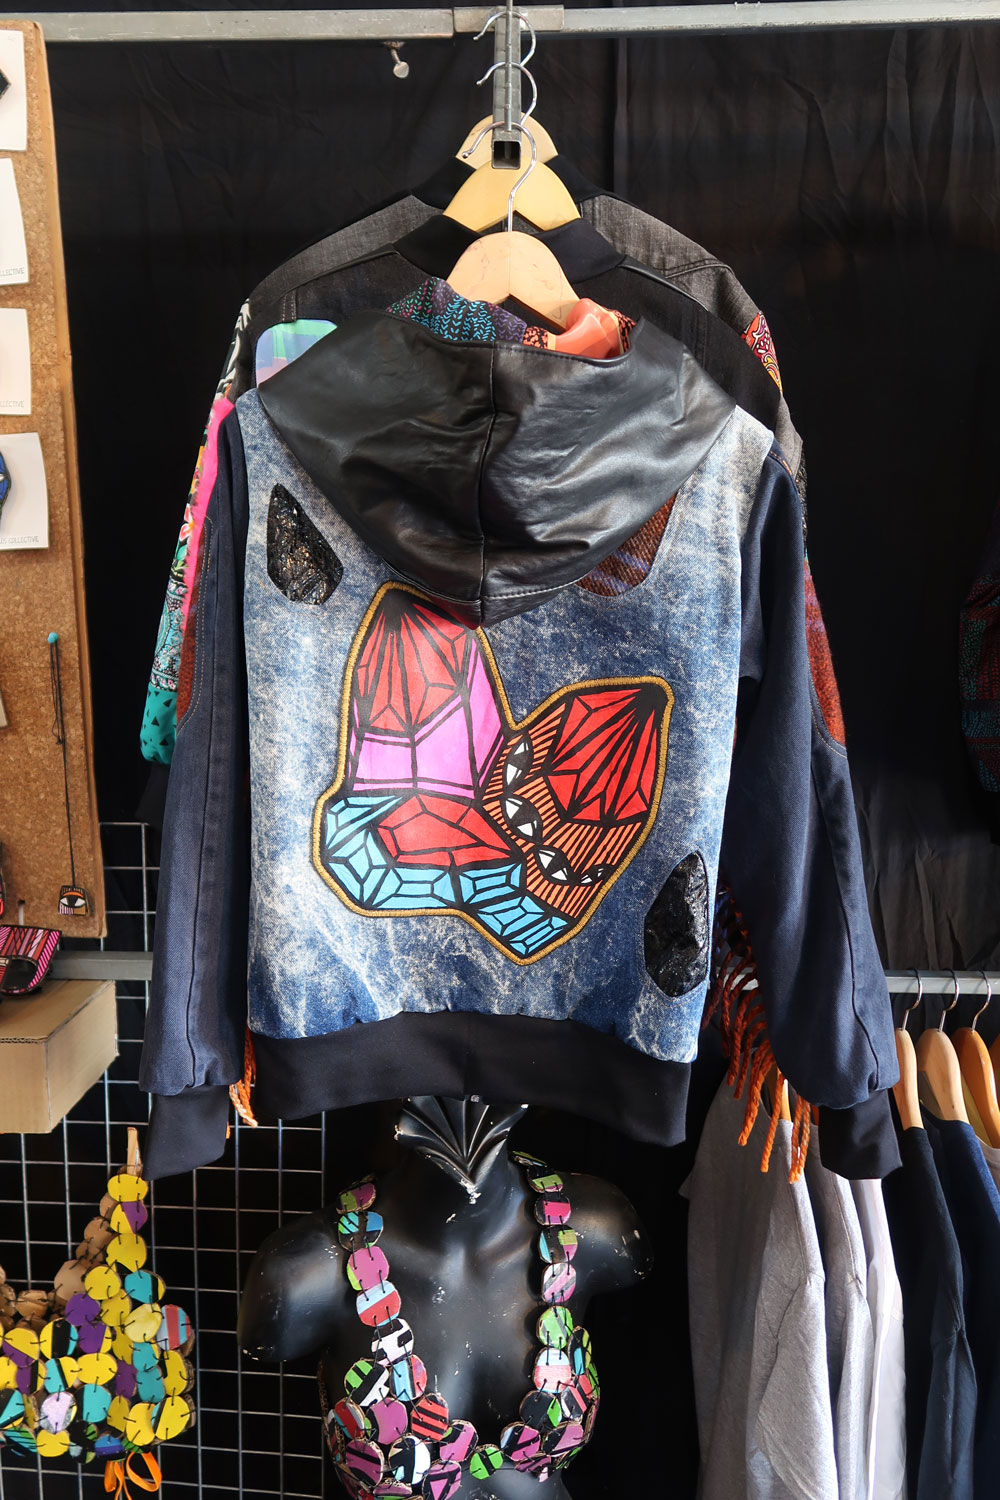 Collaboration: Spunky Bruiser Bomber Jacket with my hand painted denim patch. Made for Splendour in the Grass 2017